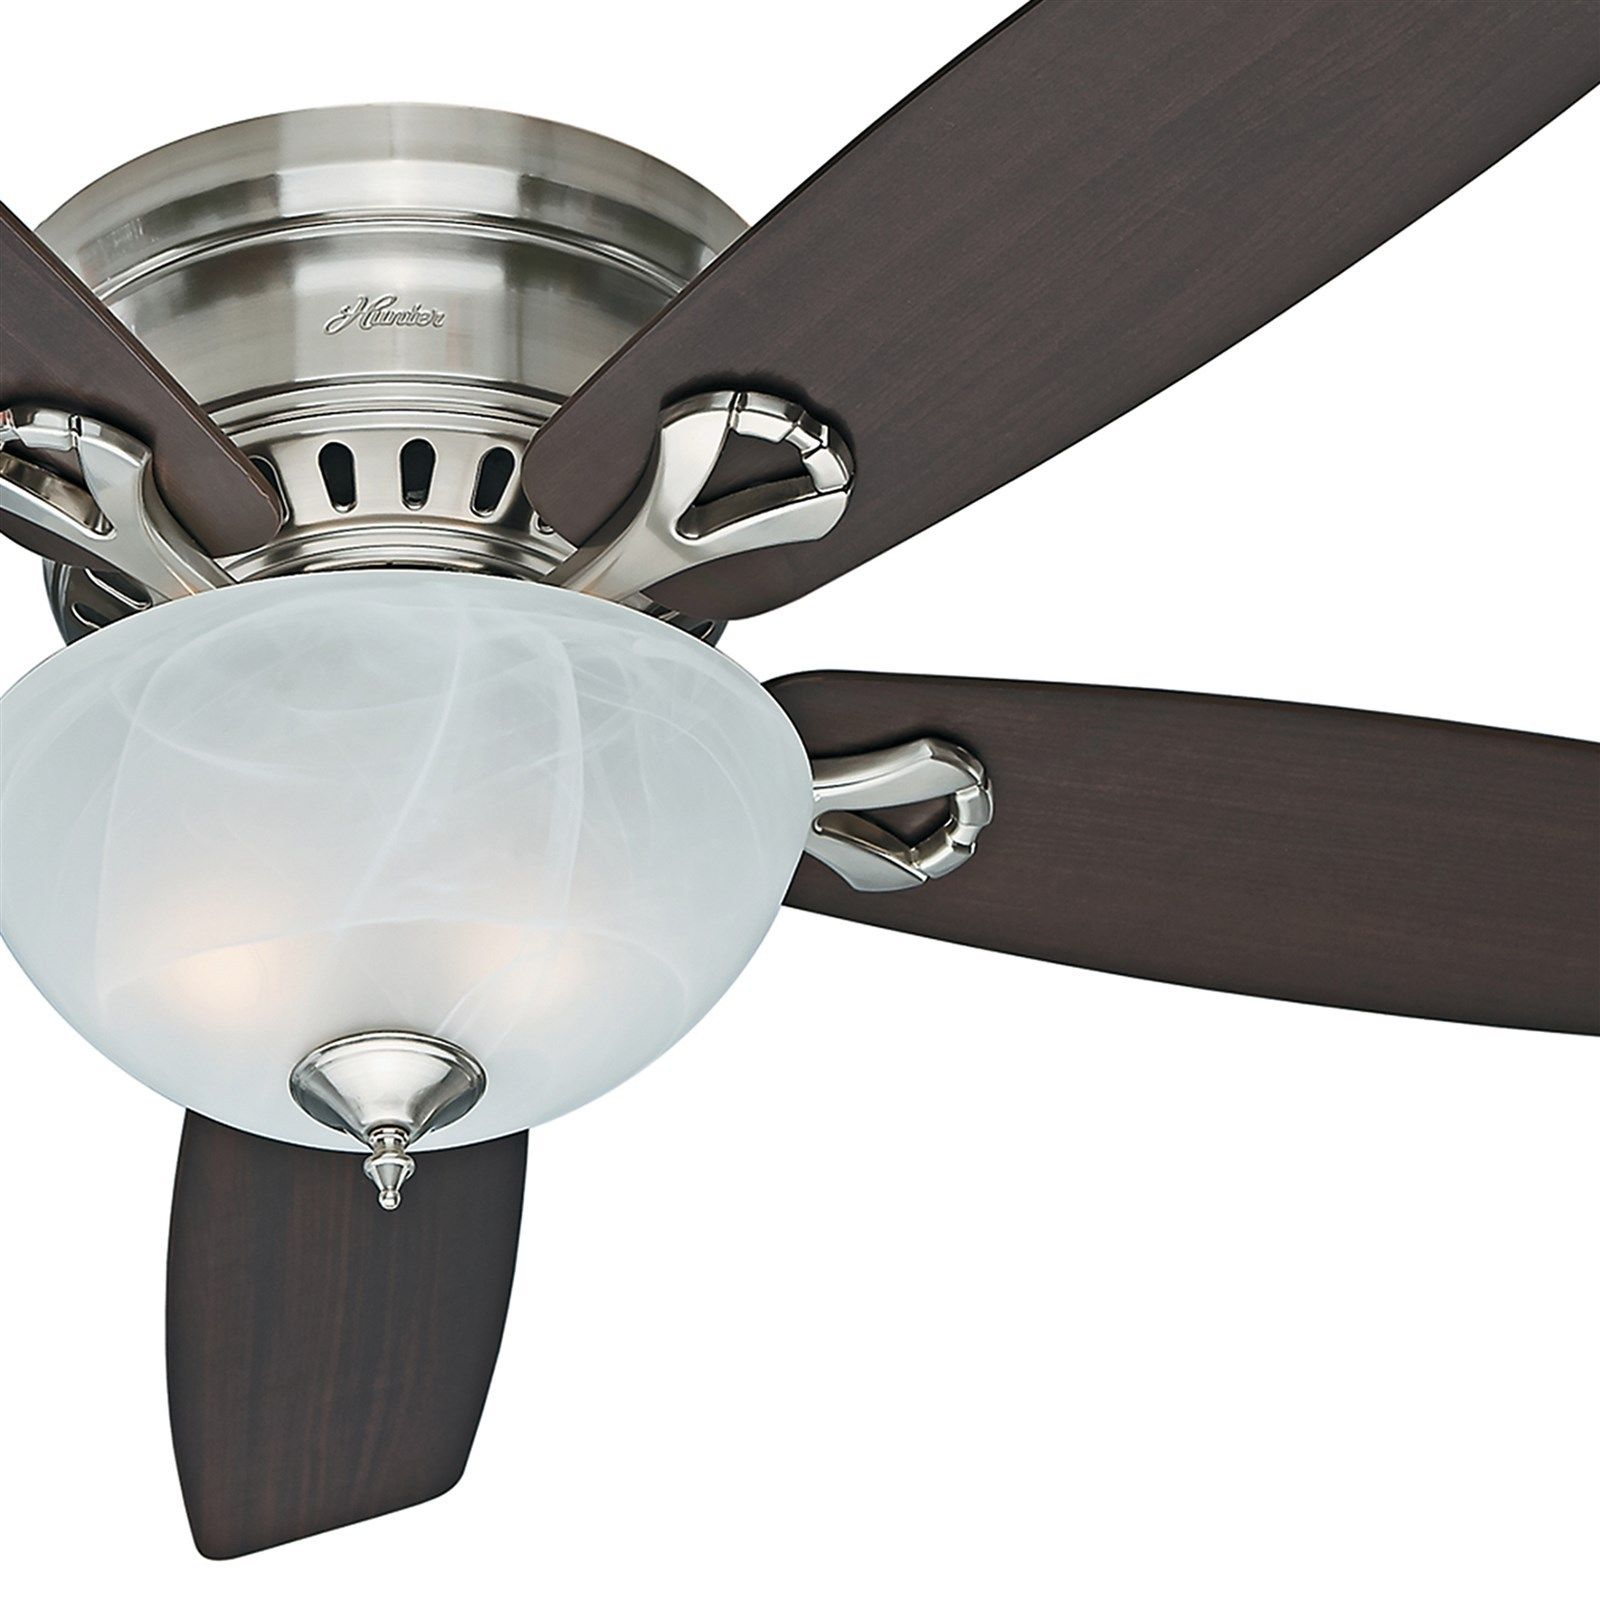 10 things you should know about low profile ceiling fan light way to use the normal low profile ceiling fan aloadofball